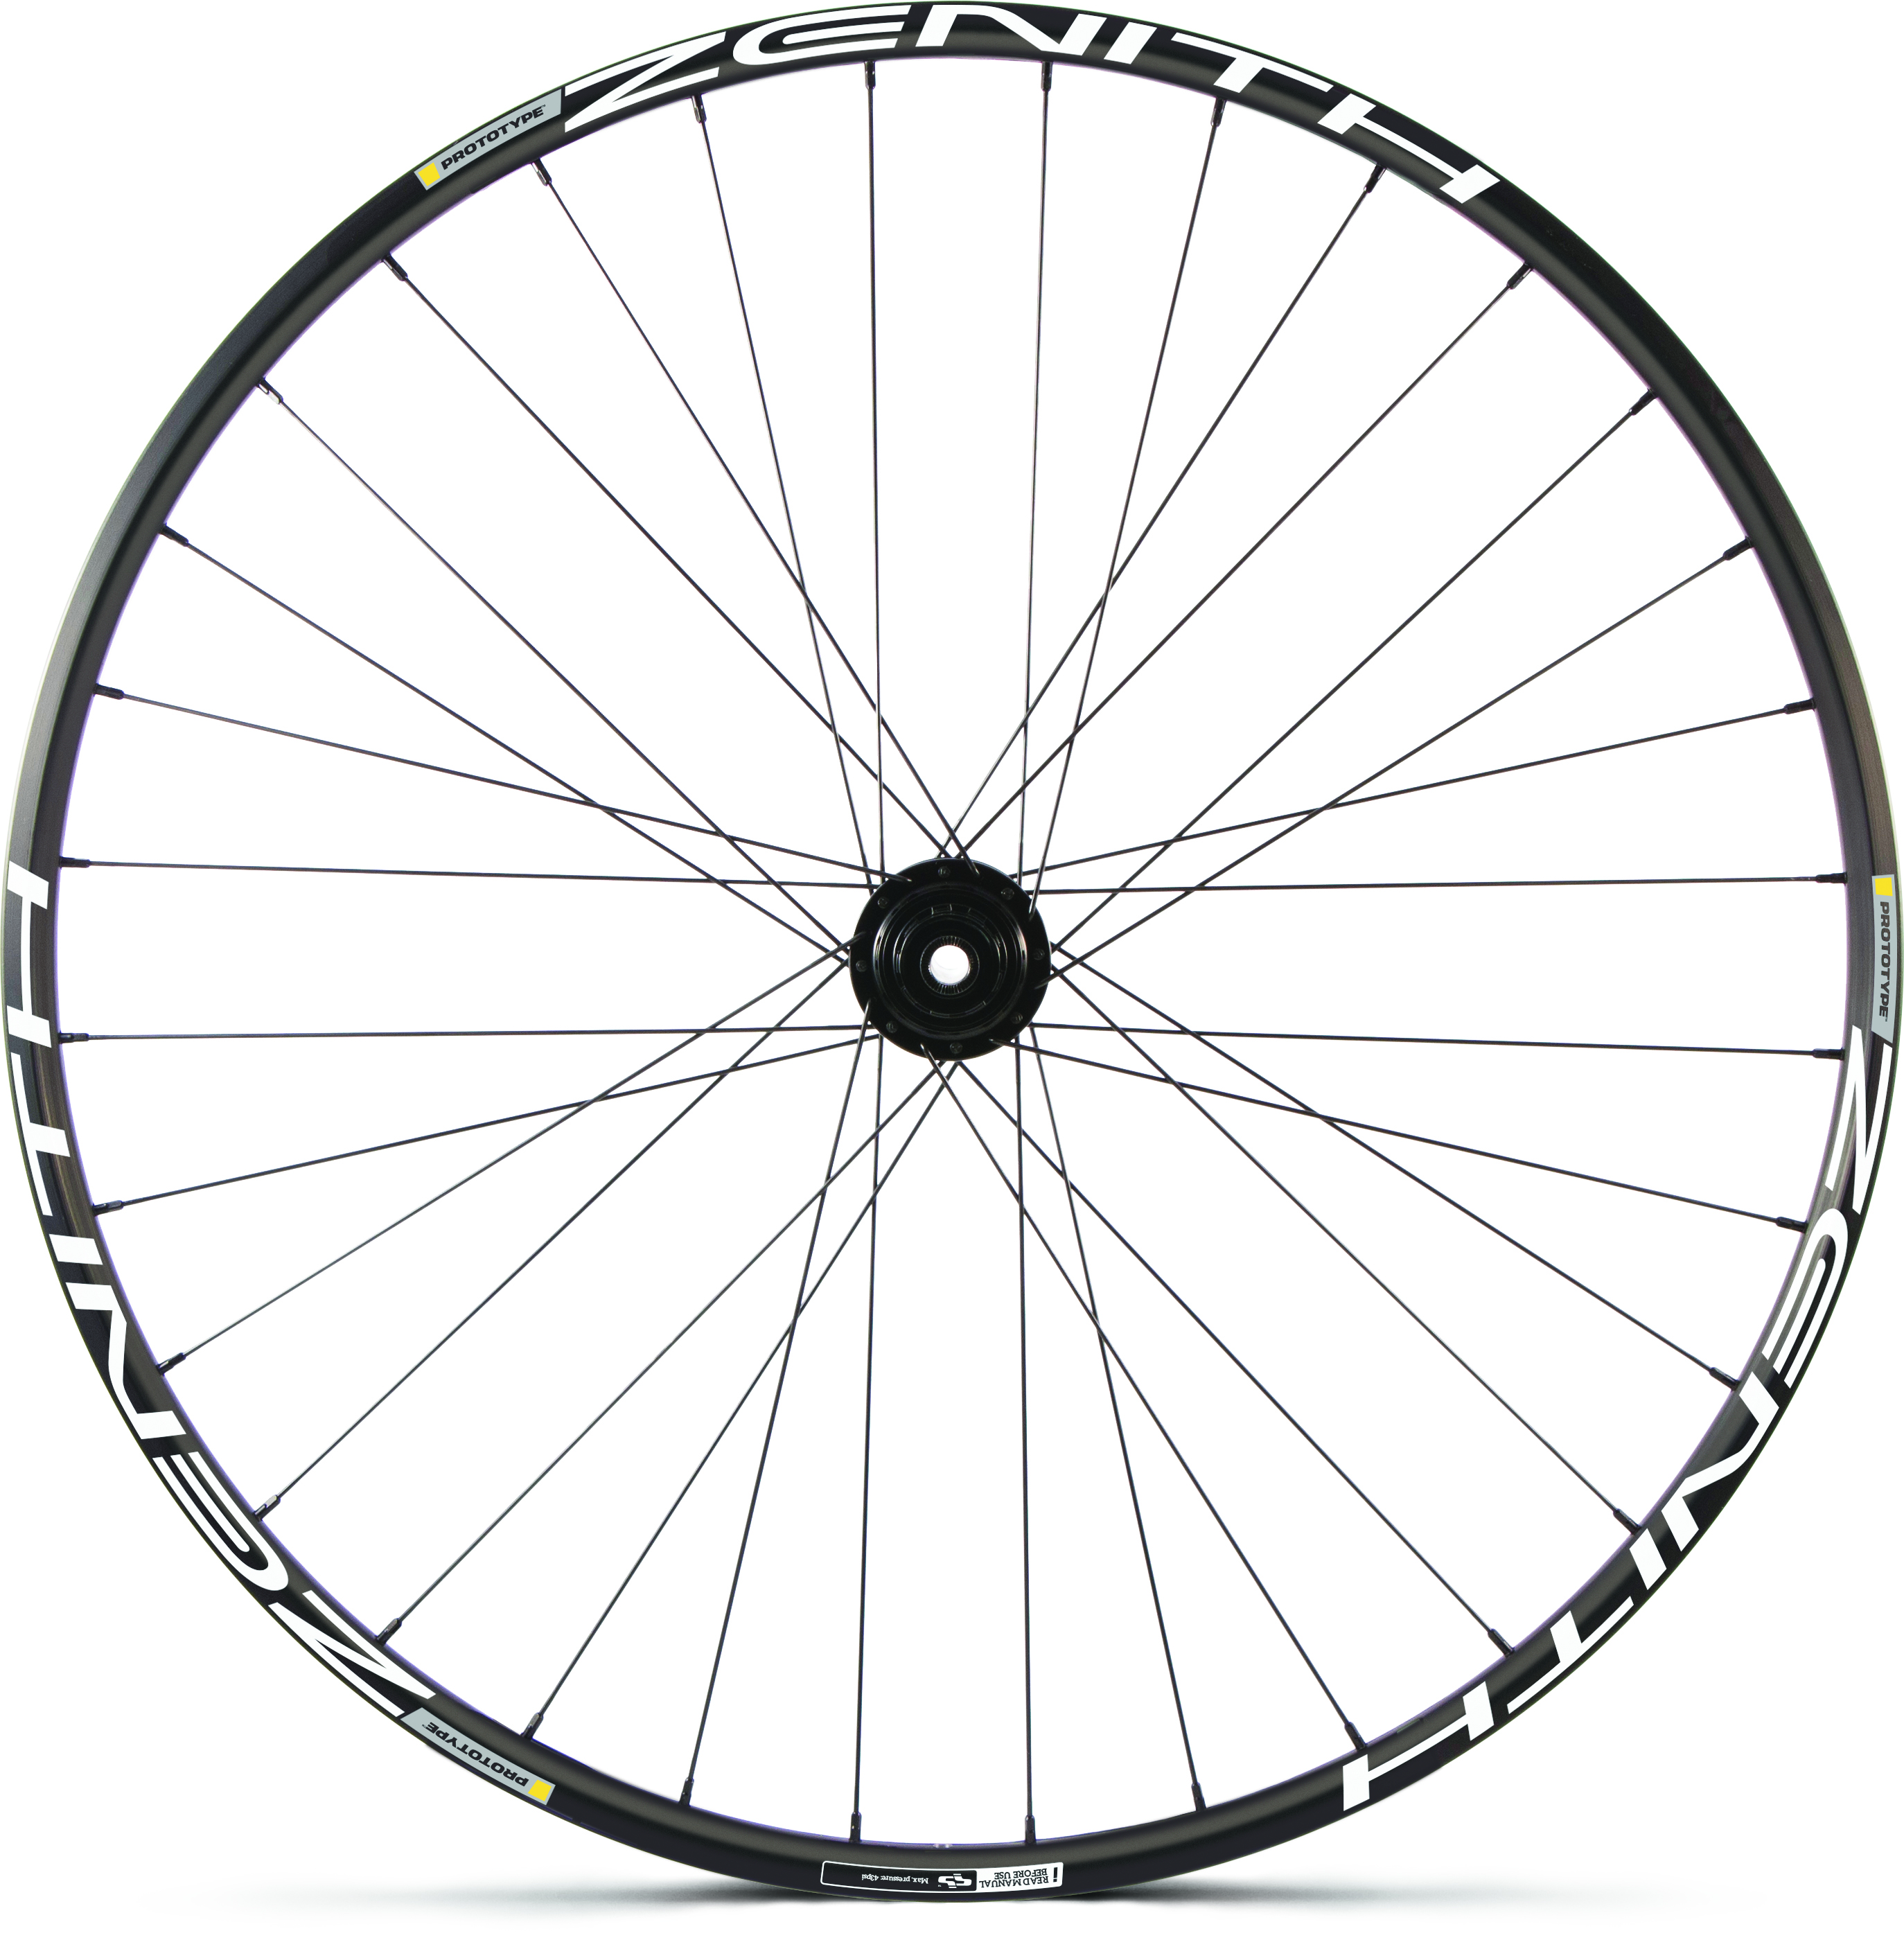 MTB Wheel Zenith 29r (Lefty)